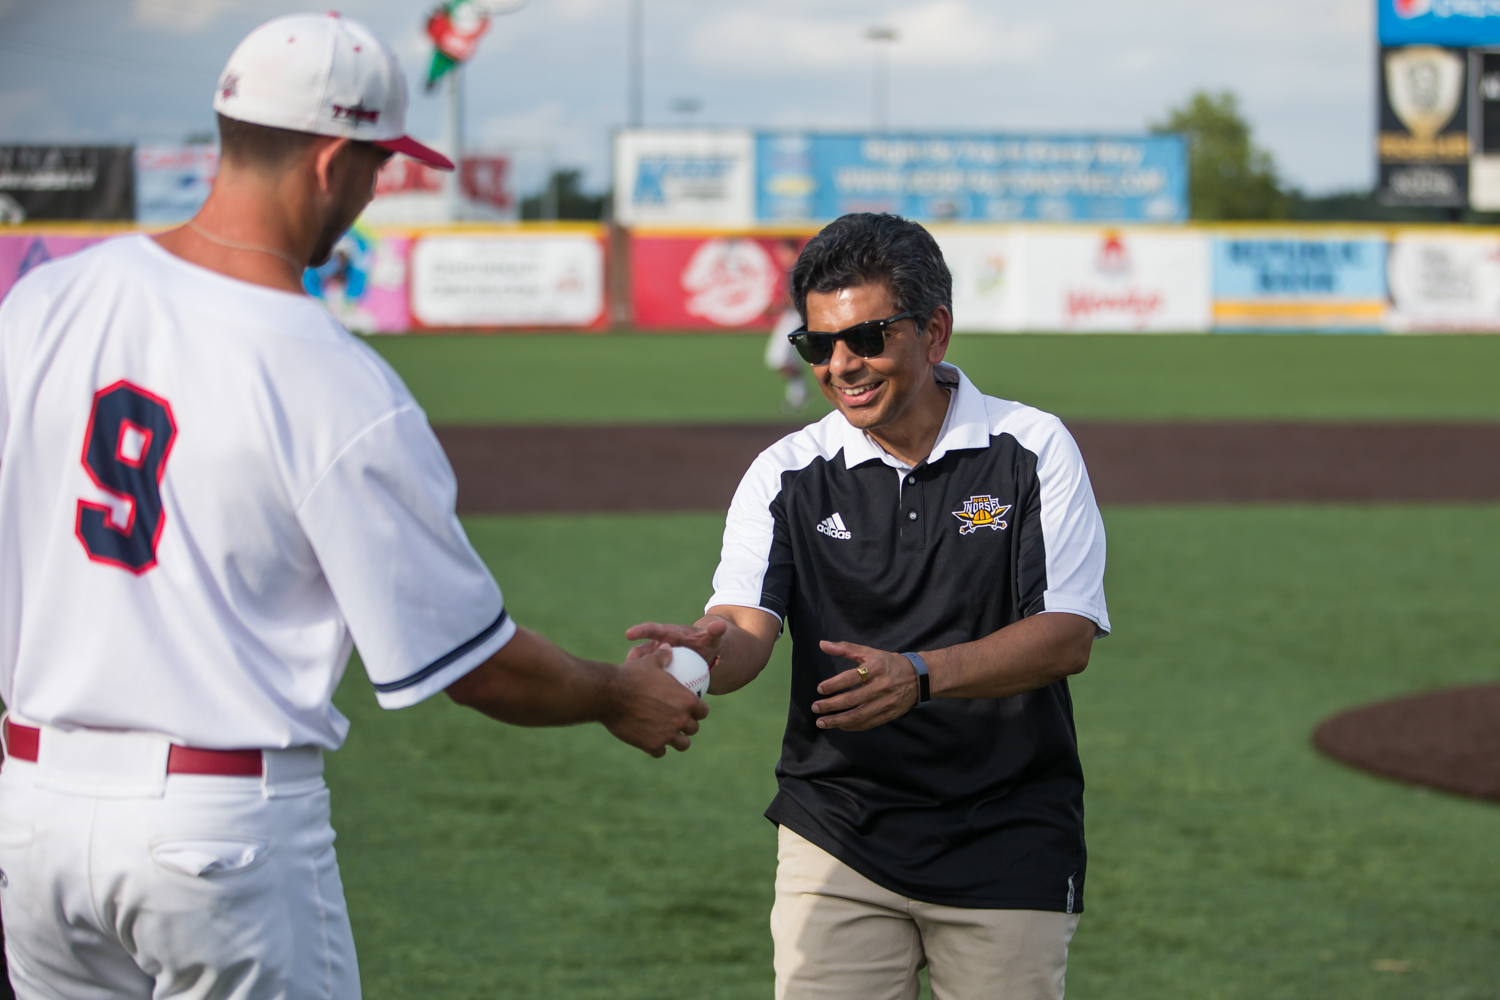 NKU+President+Ashish+Vaidya+receives+the+first+pitch+ball+from+a+Florence+Freedom+player.